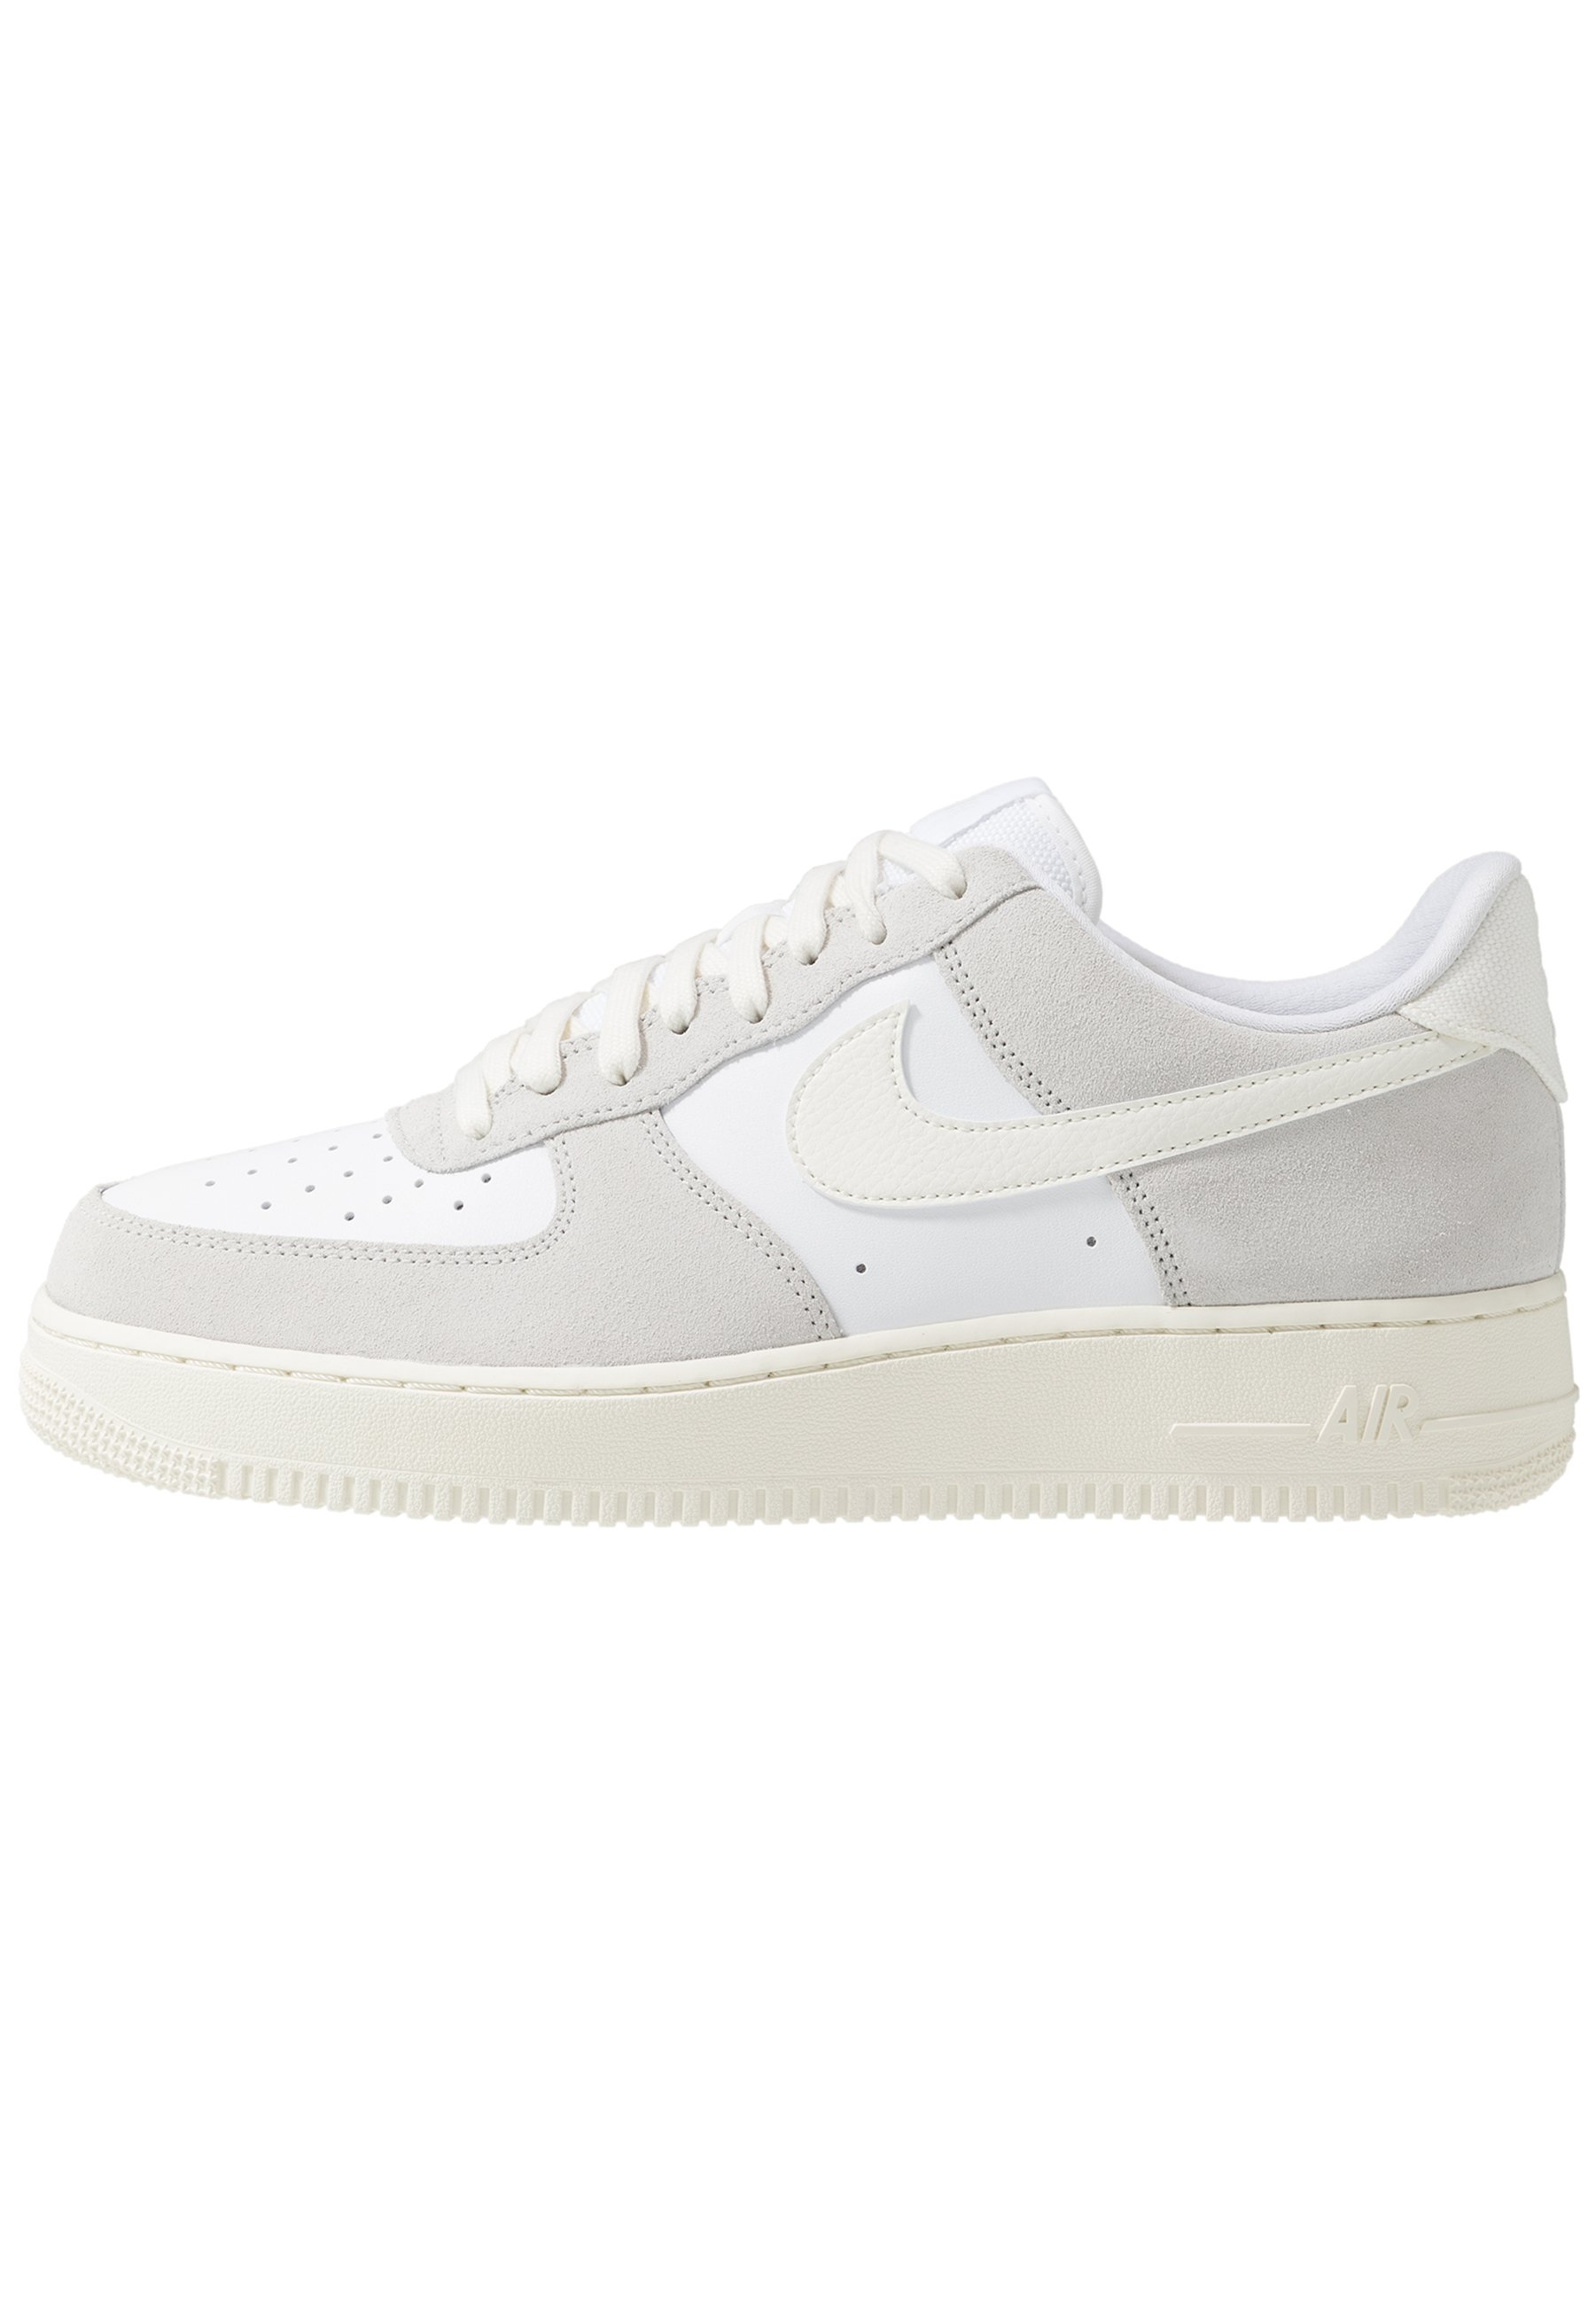 AIR FORCE 1 LV8 Sneakers laag whitesailplatinum tint